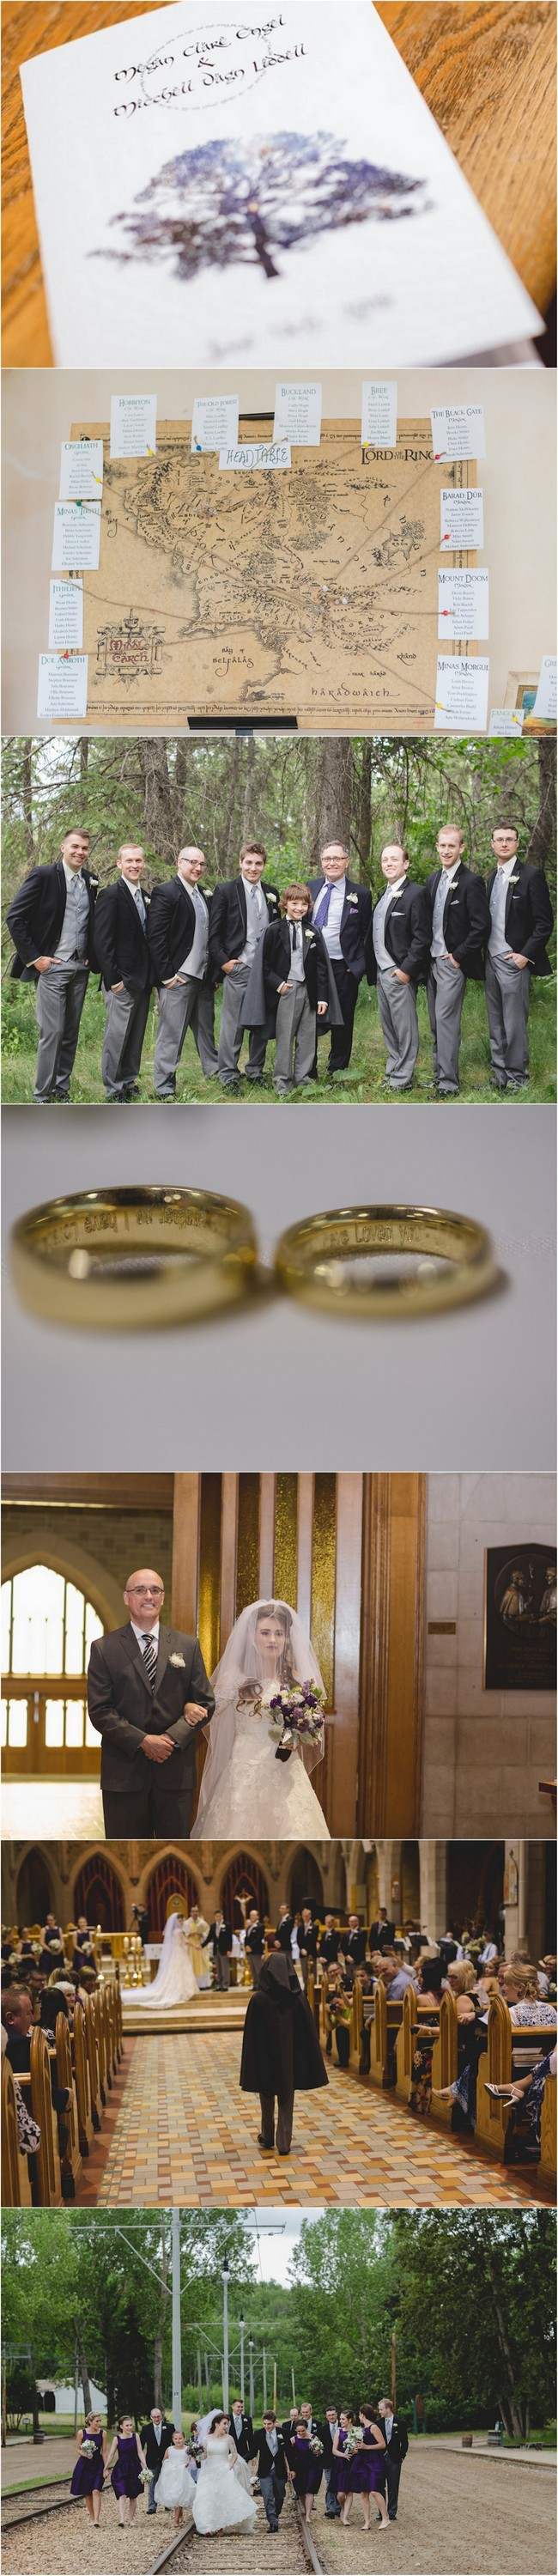 Epic Lord of the Rings Wedding - ENV Photography